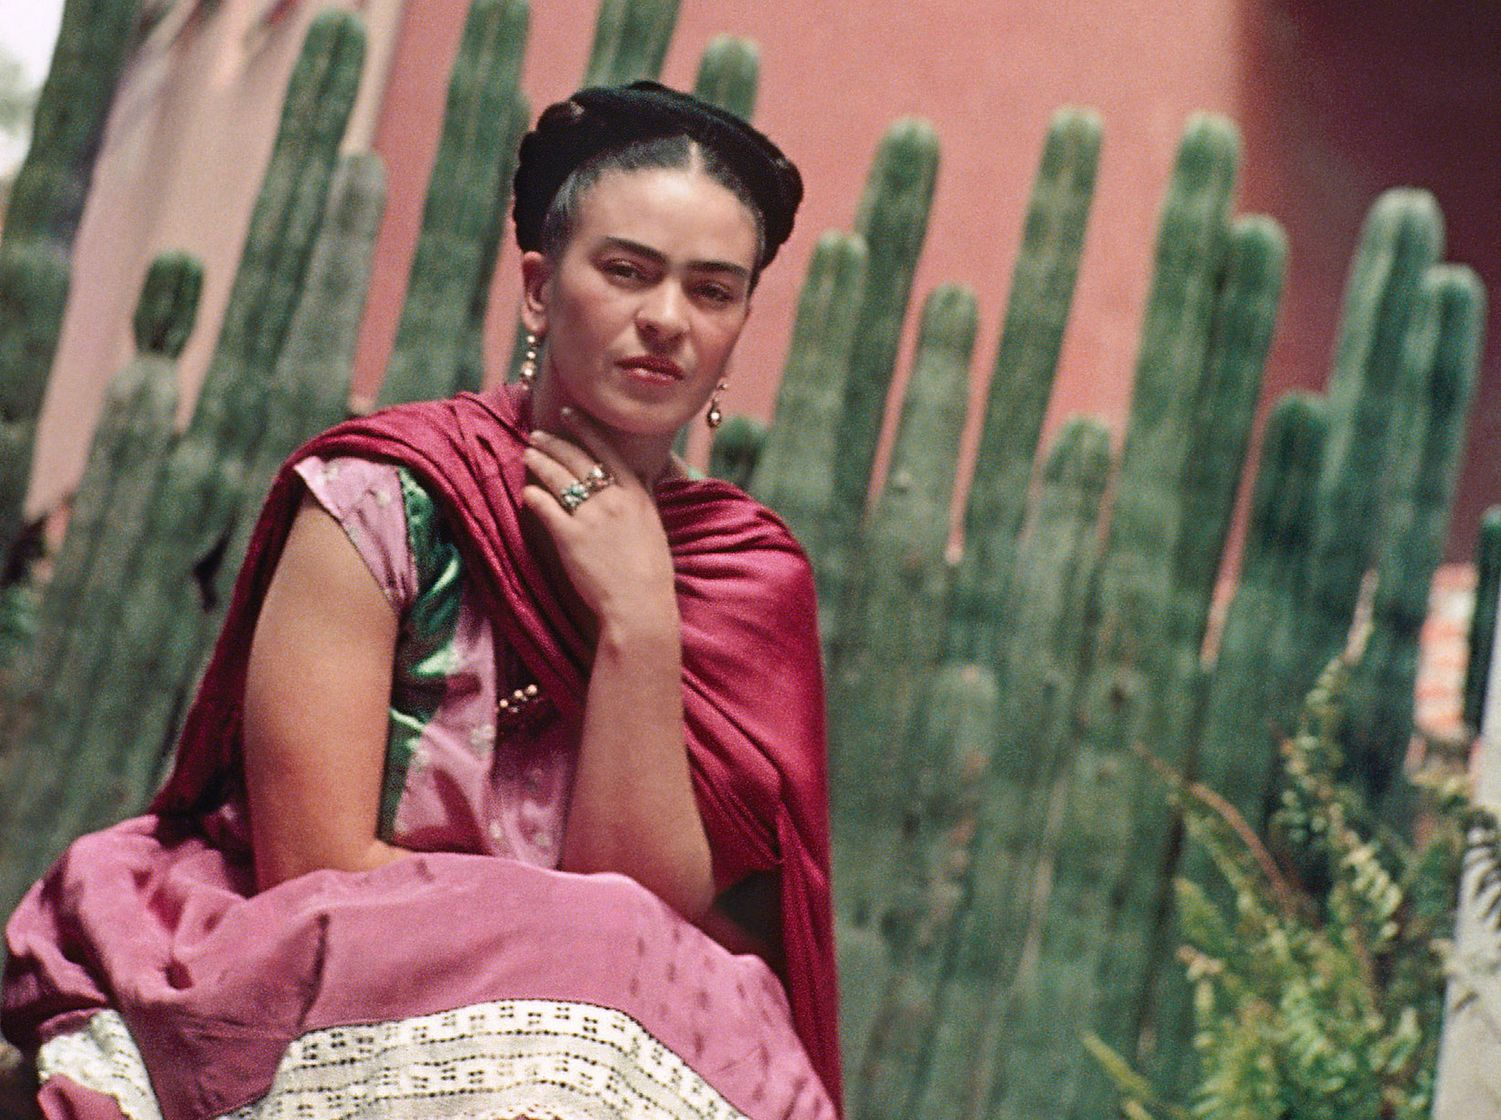 frida kahlo s downright racy plant paintings